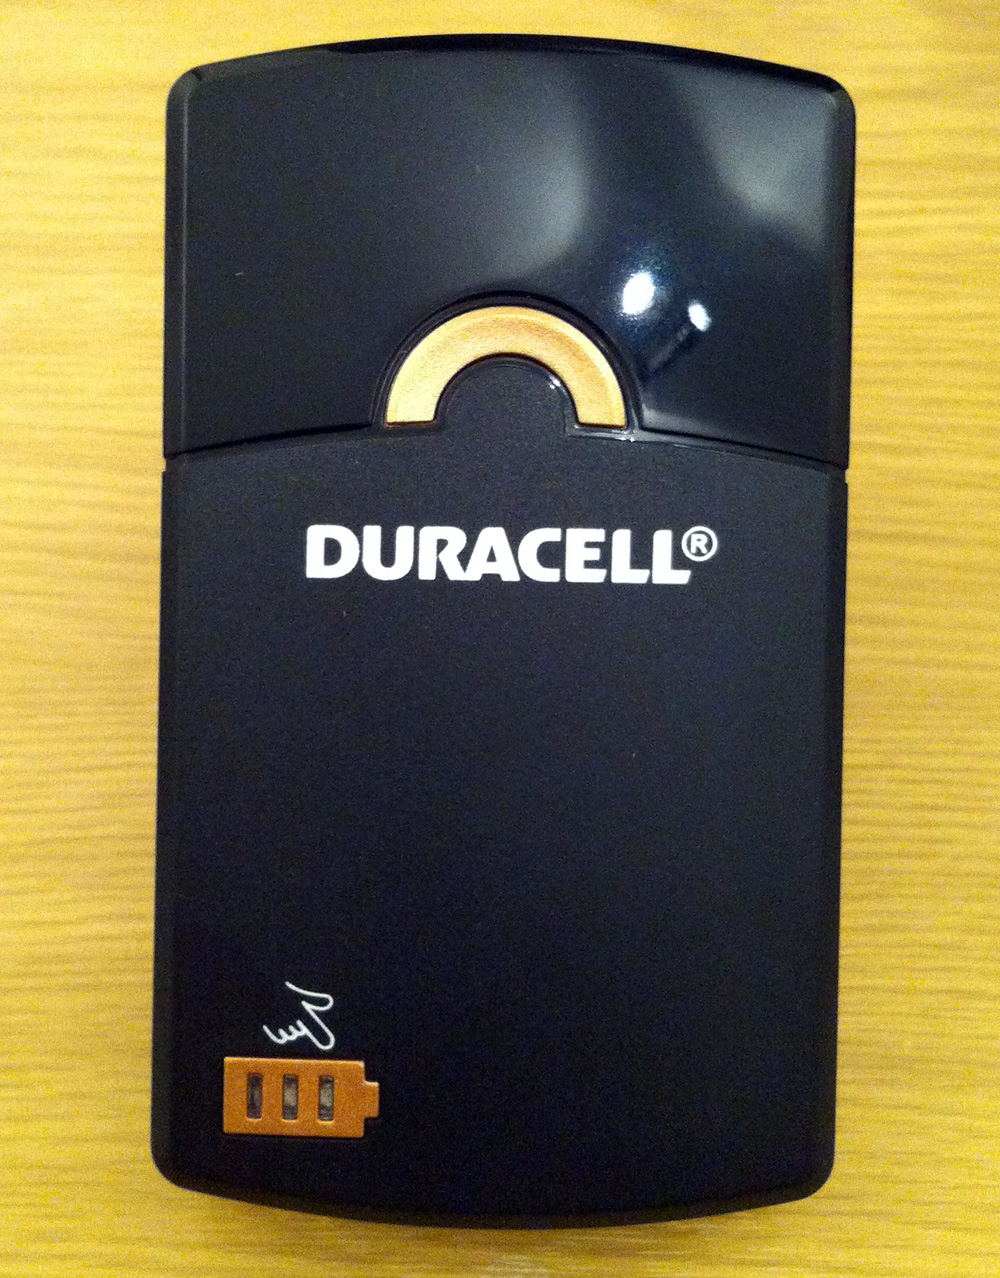 Duracell Personal Power